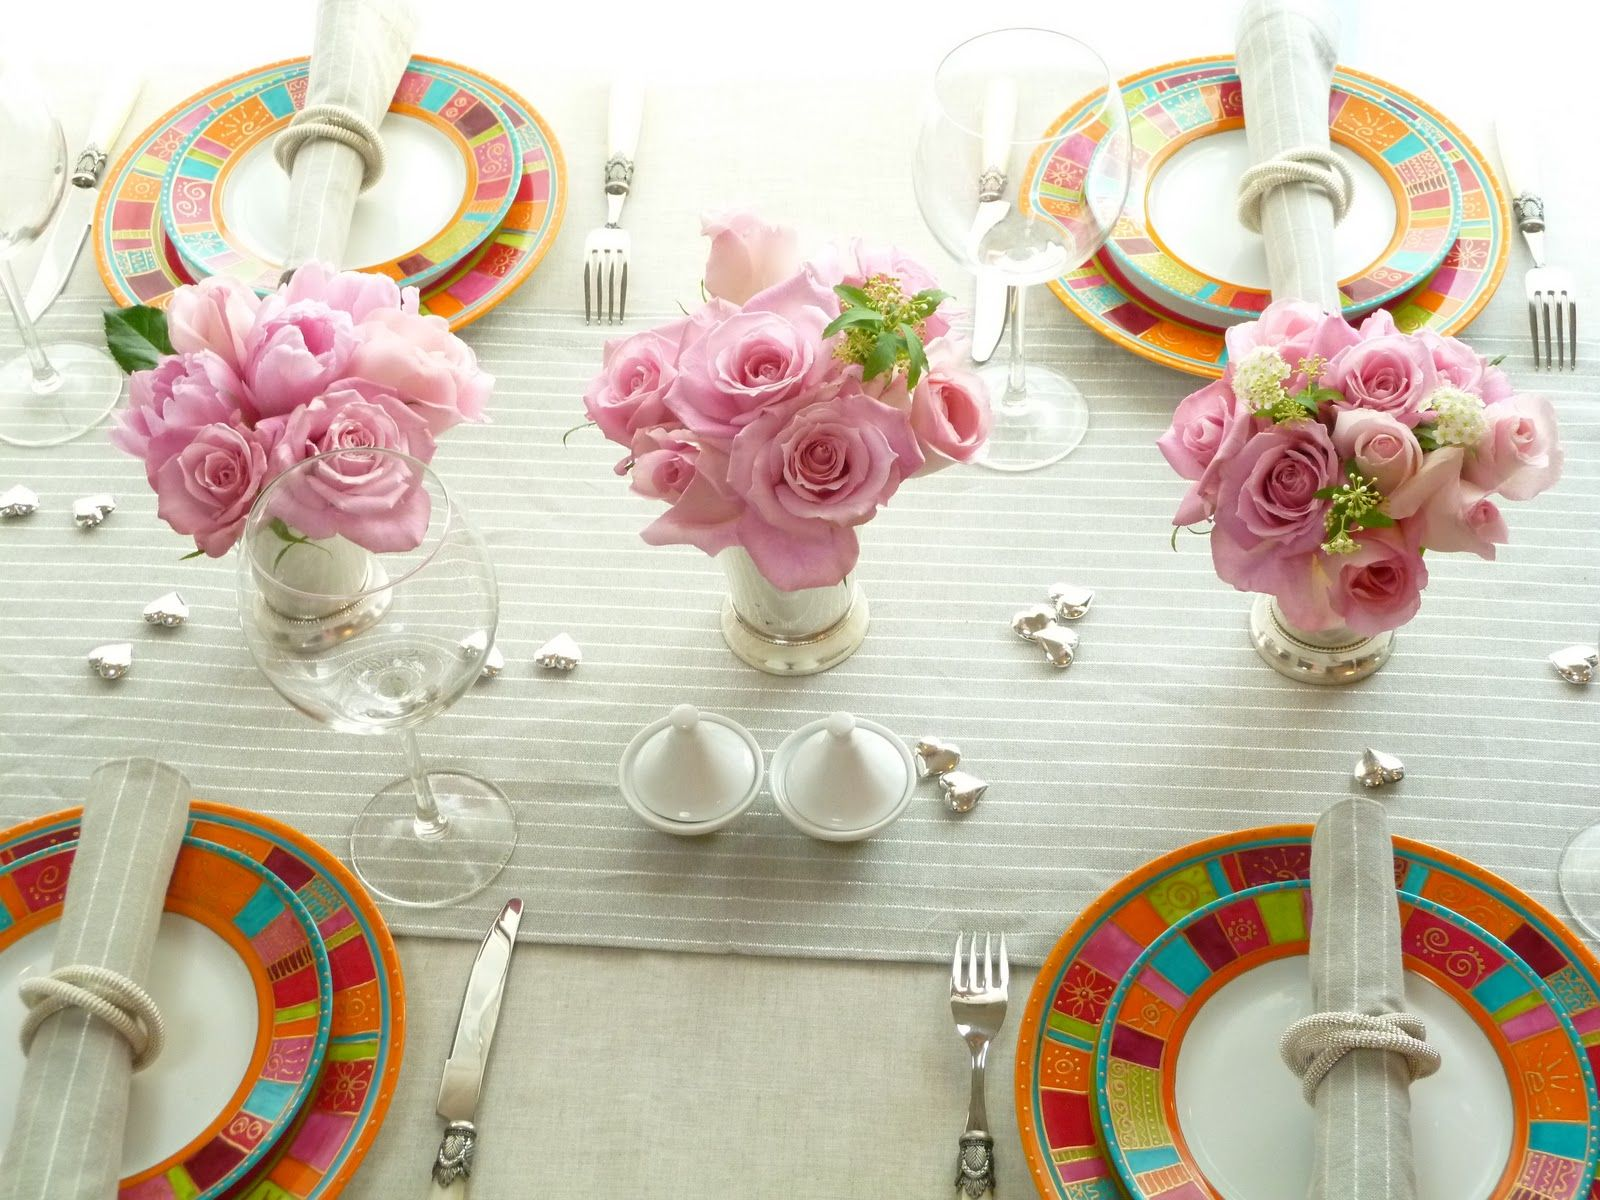 Elegant Scroll Down To See The Rest Of The Spring Table Decorating Ideas That We  Have Chosen